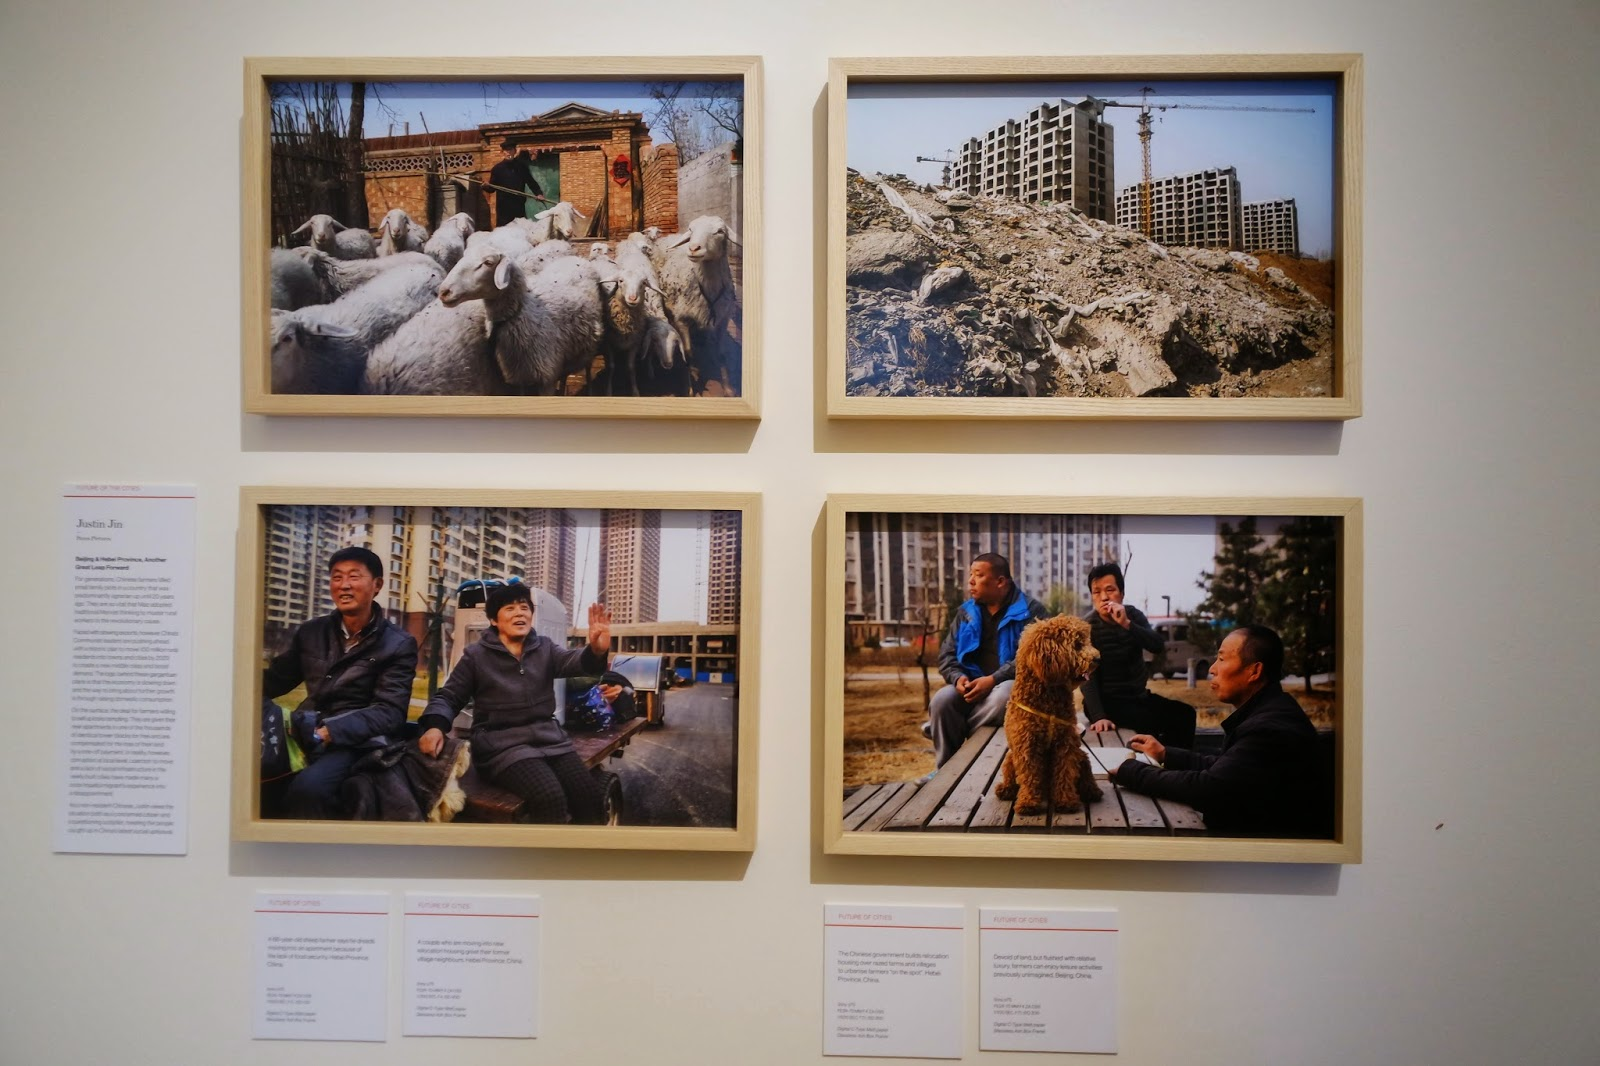 2015 Sony World Photography Awards Exhibition